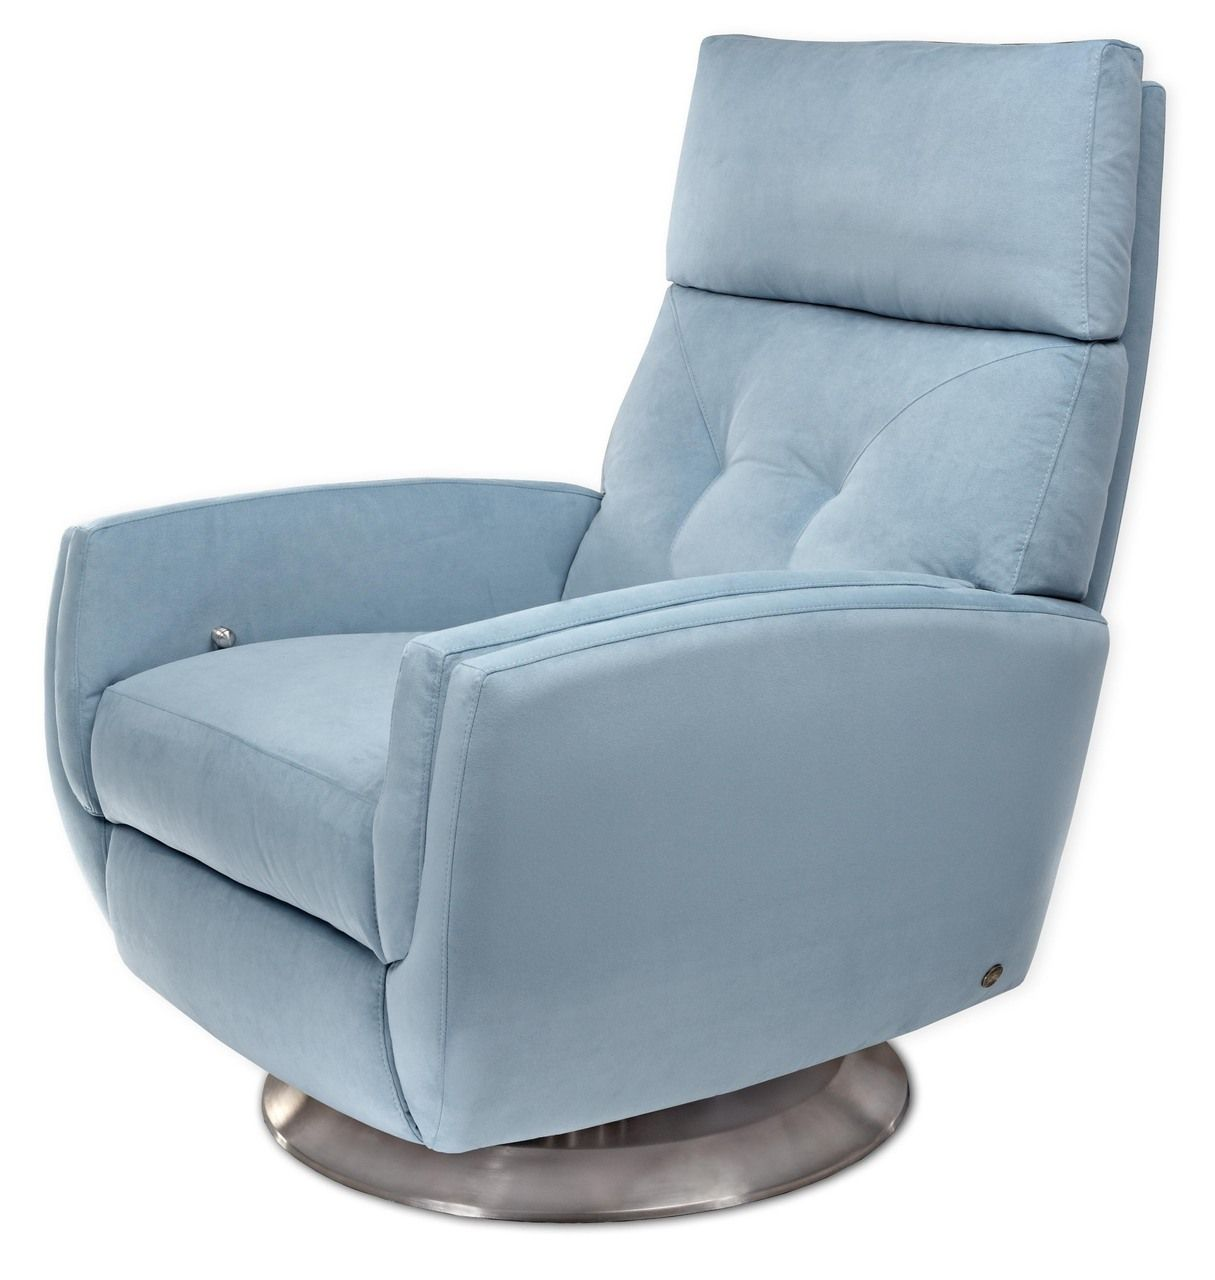 american leather chairs and recliners party tables for sale gavin recliner by grade 8 fabric living area